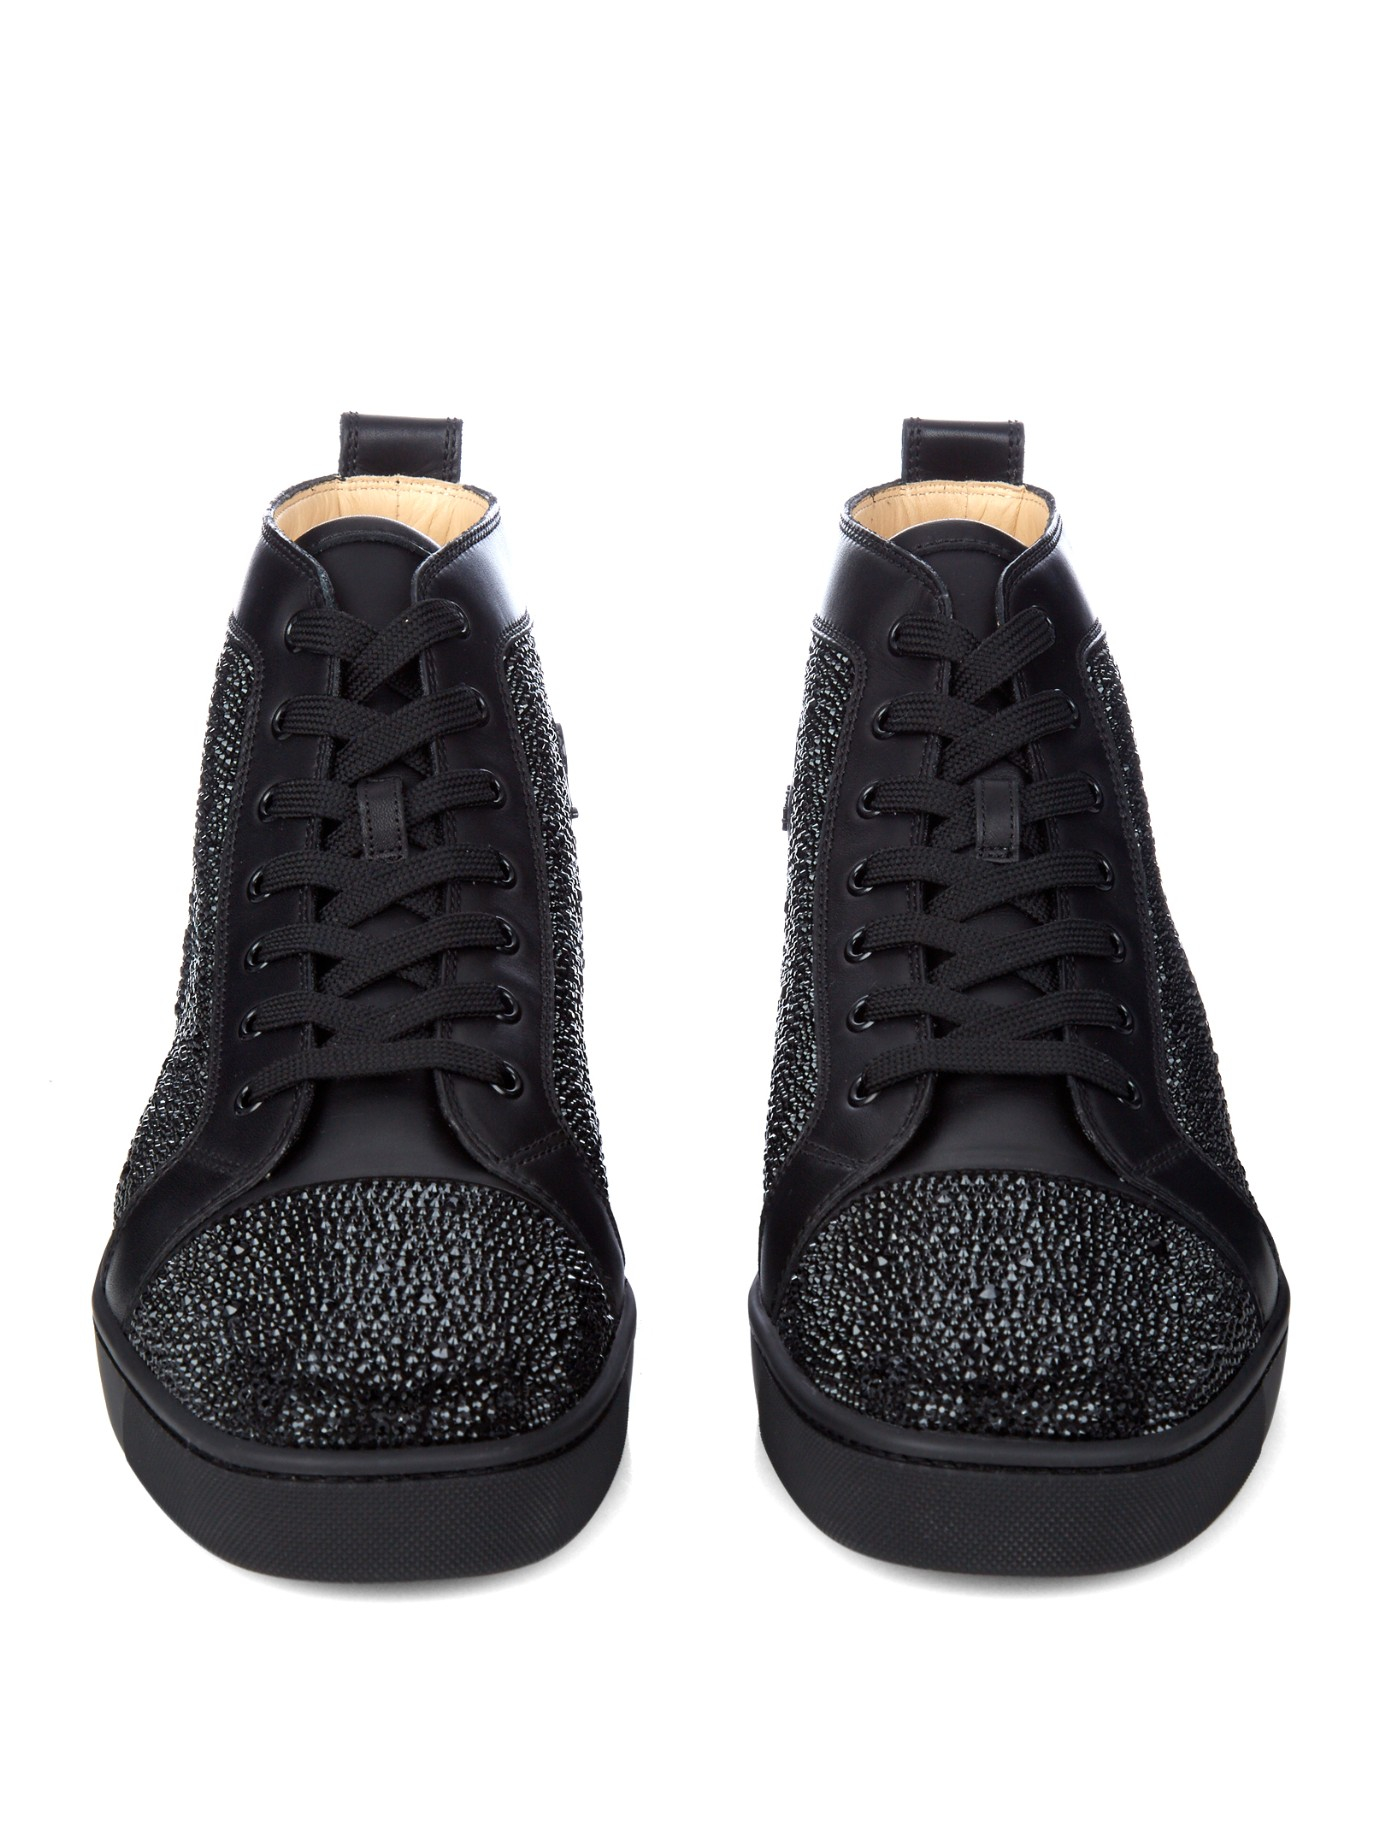 46d3fa37fb9 Lyst - Christian Louboutin Louis Lux High-Top Sneakers in Black for Men